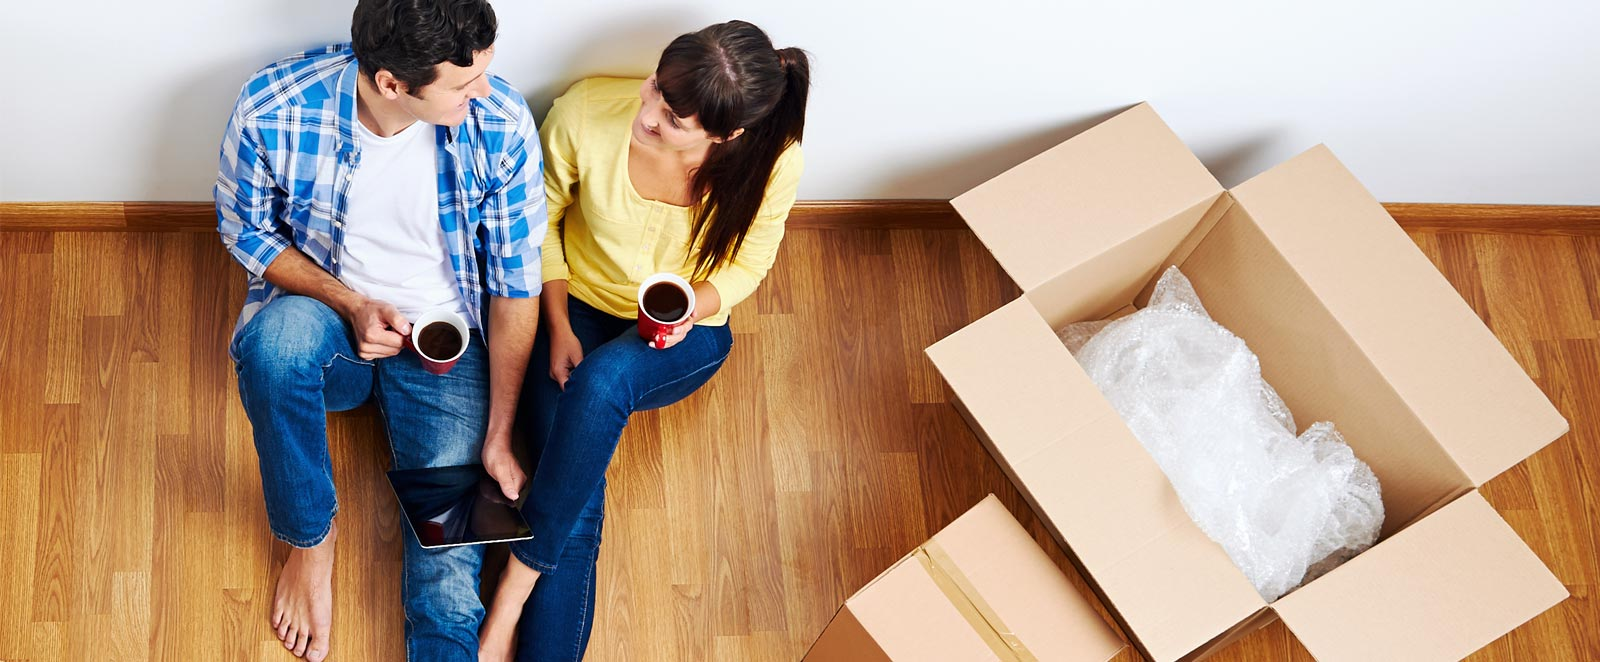 SH Haughton Moving Company | New Castle Delaware | 302-324-9505